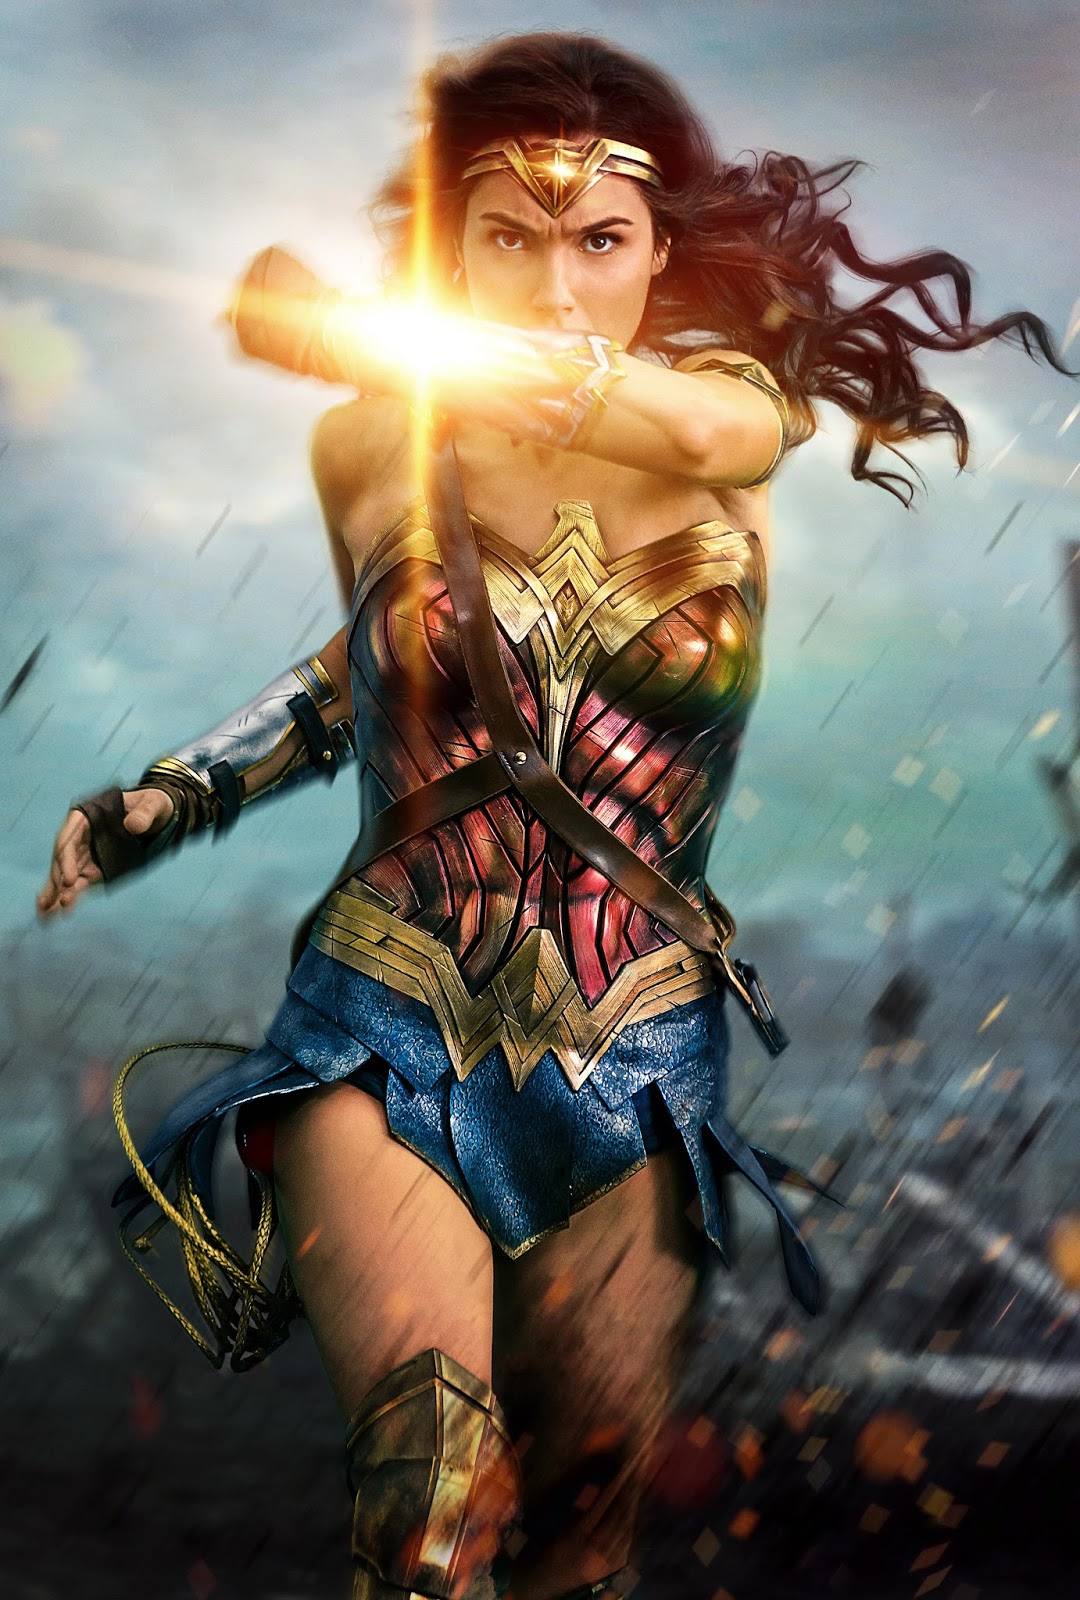 Israeli actress Gal Gadot plays Diana, princess of the Amazons